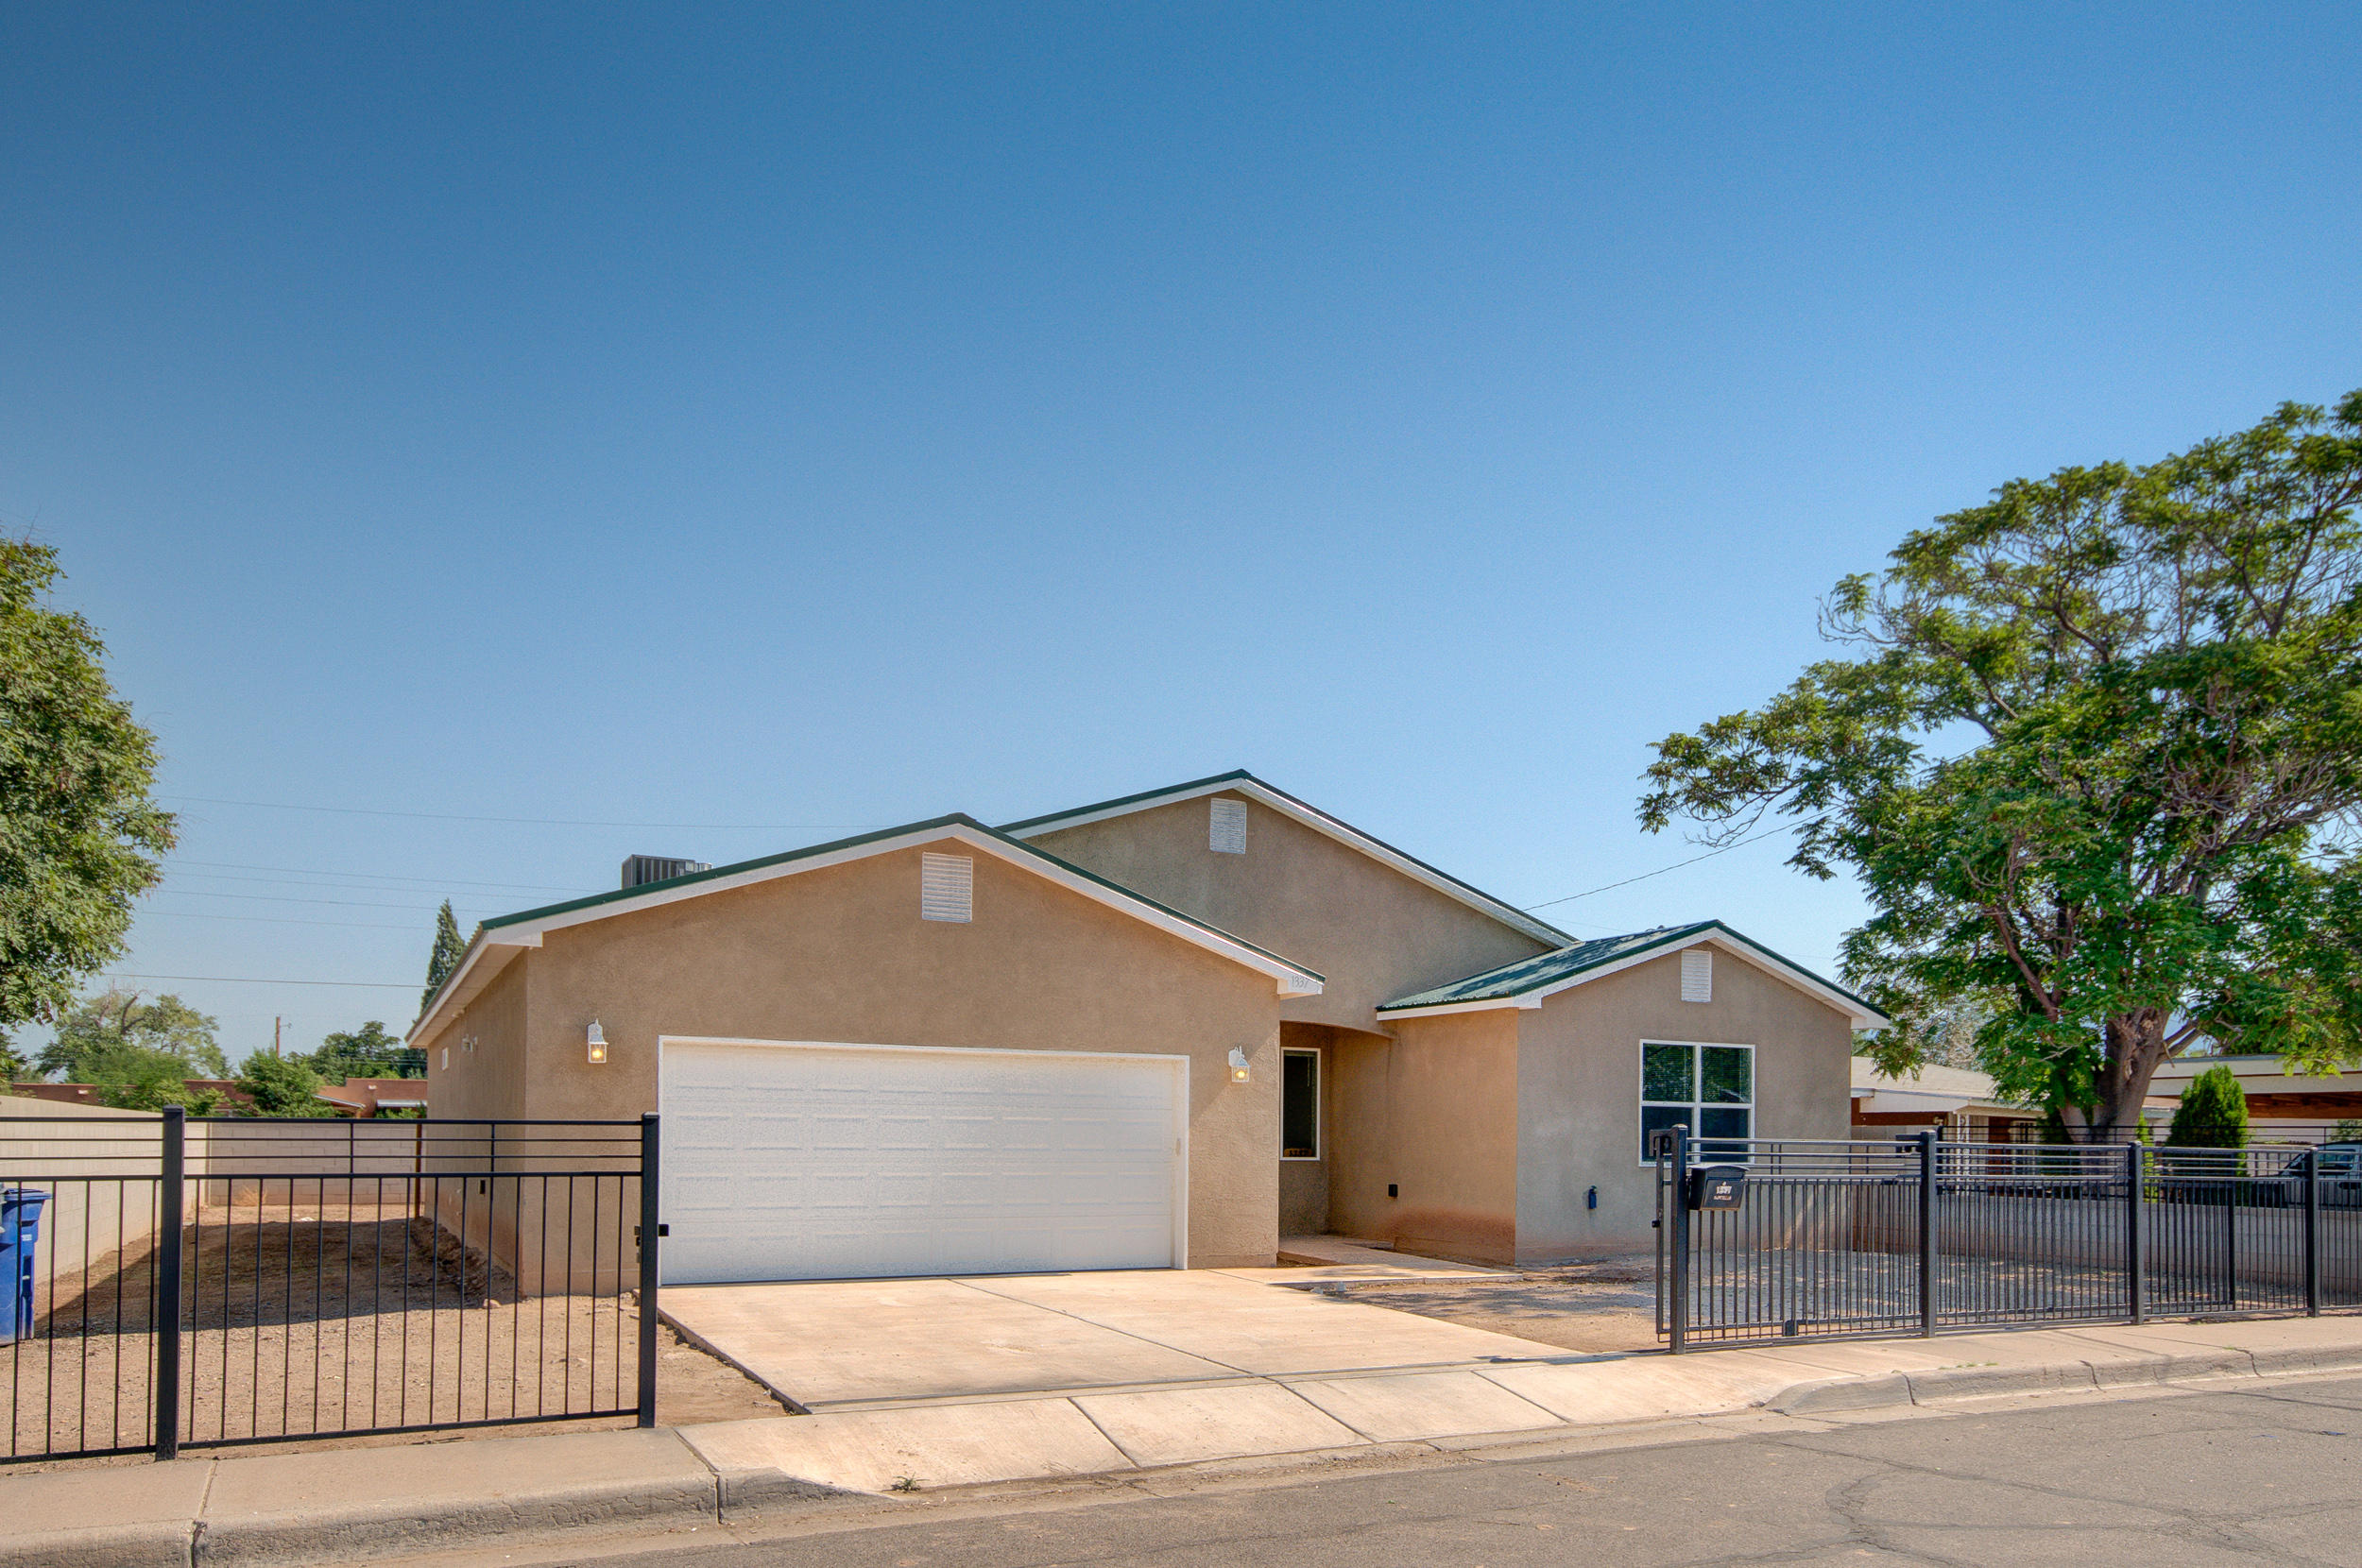 Welcome to the North Valley. This 4 year old home was build in 2016. 3 Bedrooms, 2 Baths and a 2 Car Garage located on a quiet cut-de-sac location. The entire property is fenced/gated for security, possible backyard access. Large open greatroom, formal dining area, kitchen island, stainless steel appliances. The master bedroom is HUGE, double sinks, large walk-in closets. You have a blank slate for your landscaping ideas. This home is GREAT!